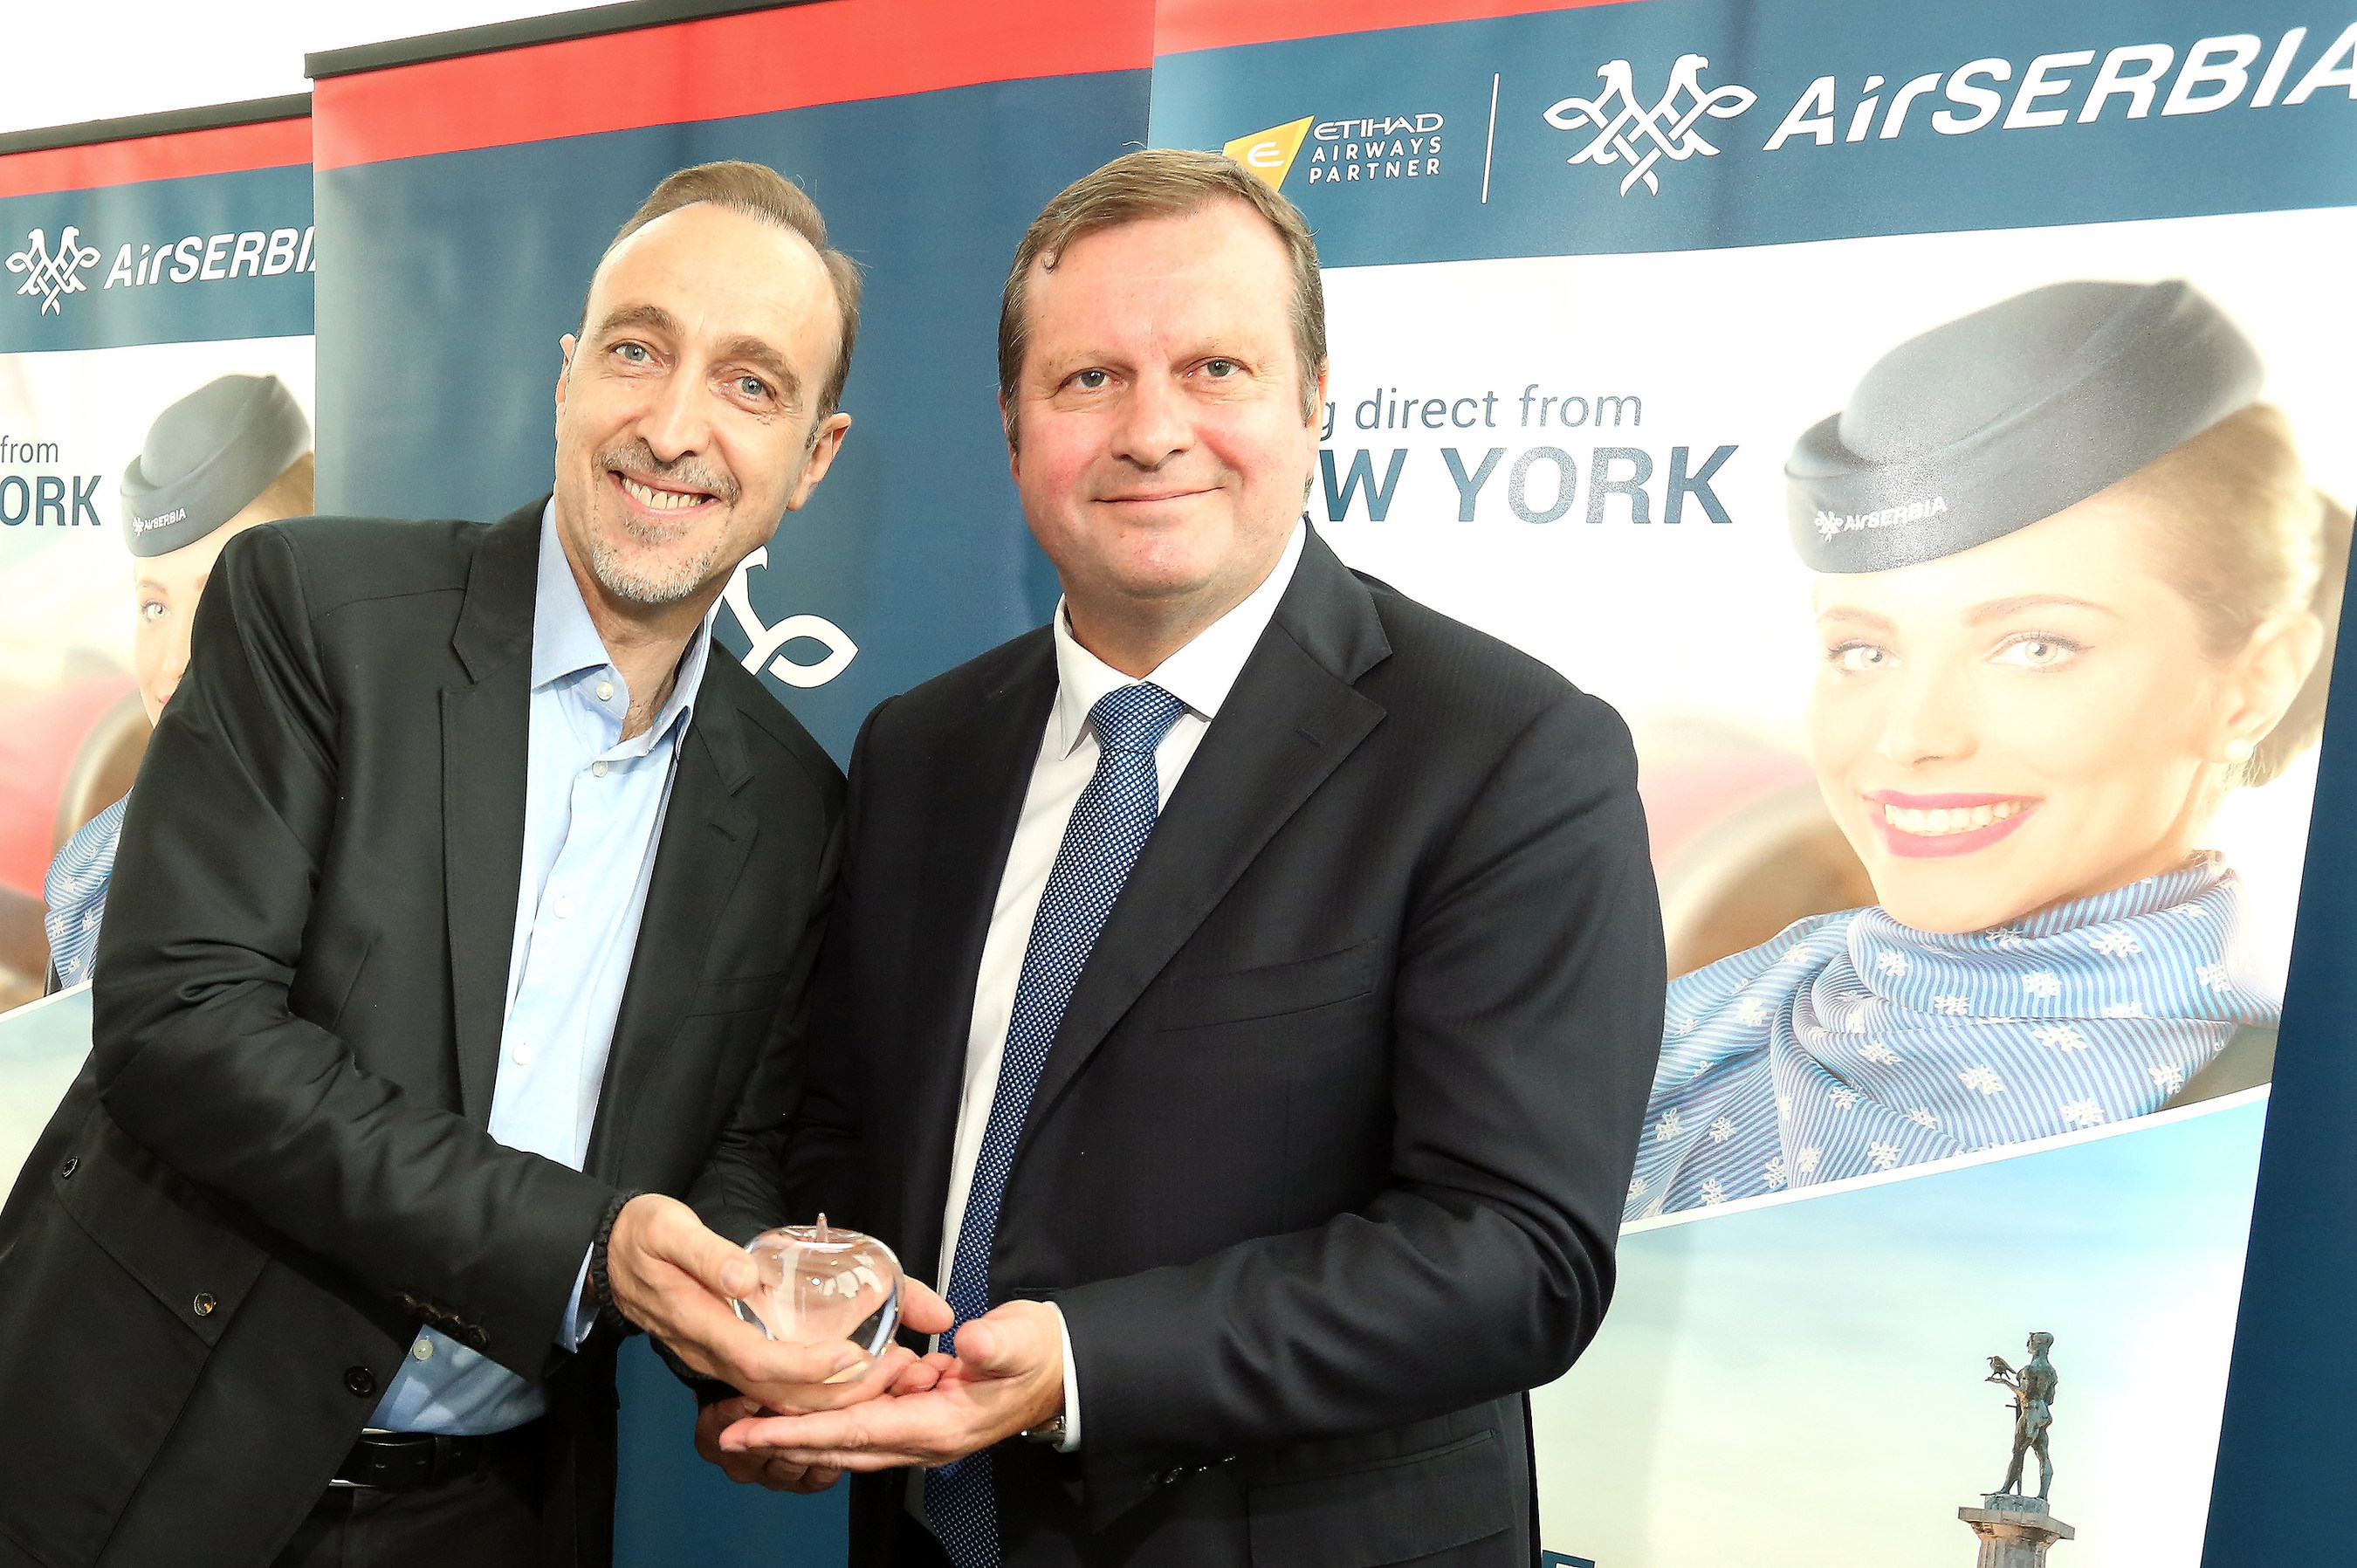 Gert-Jan de Graaf, President and Chief Executive Officer of JFK IAT, LLC presents Dane Kondić, Chief Executive Officer of Air Serbia with a commemorative glass apple to celebrate the start of Air Serbia's non-stop service from Belgrade to New York.